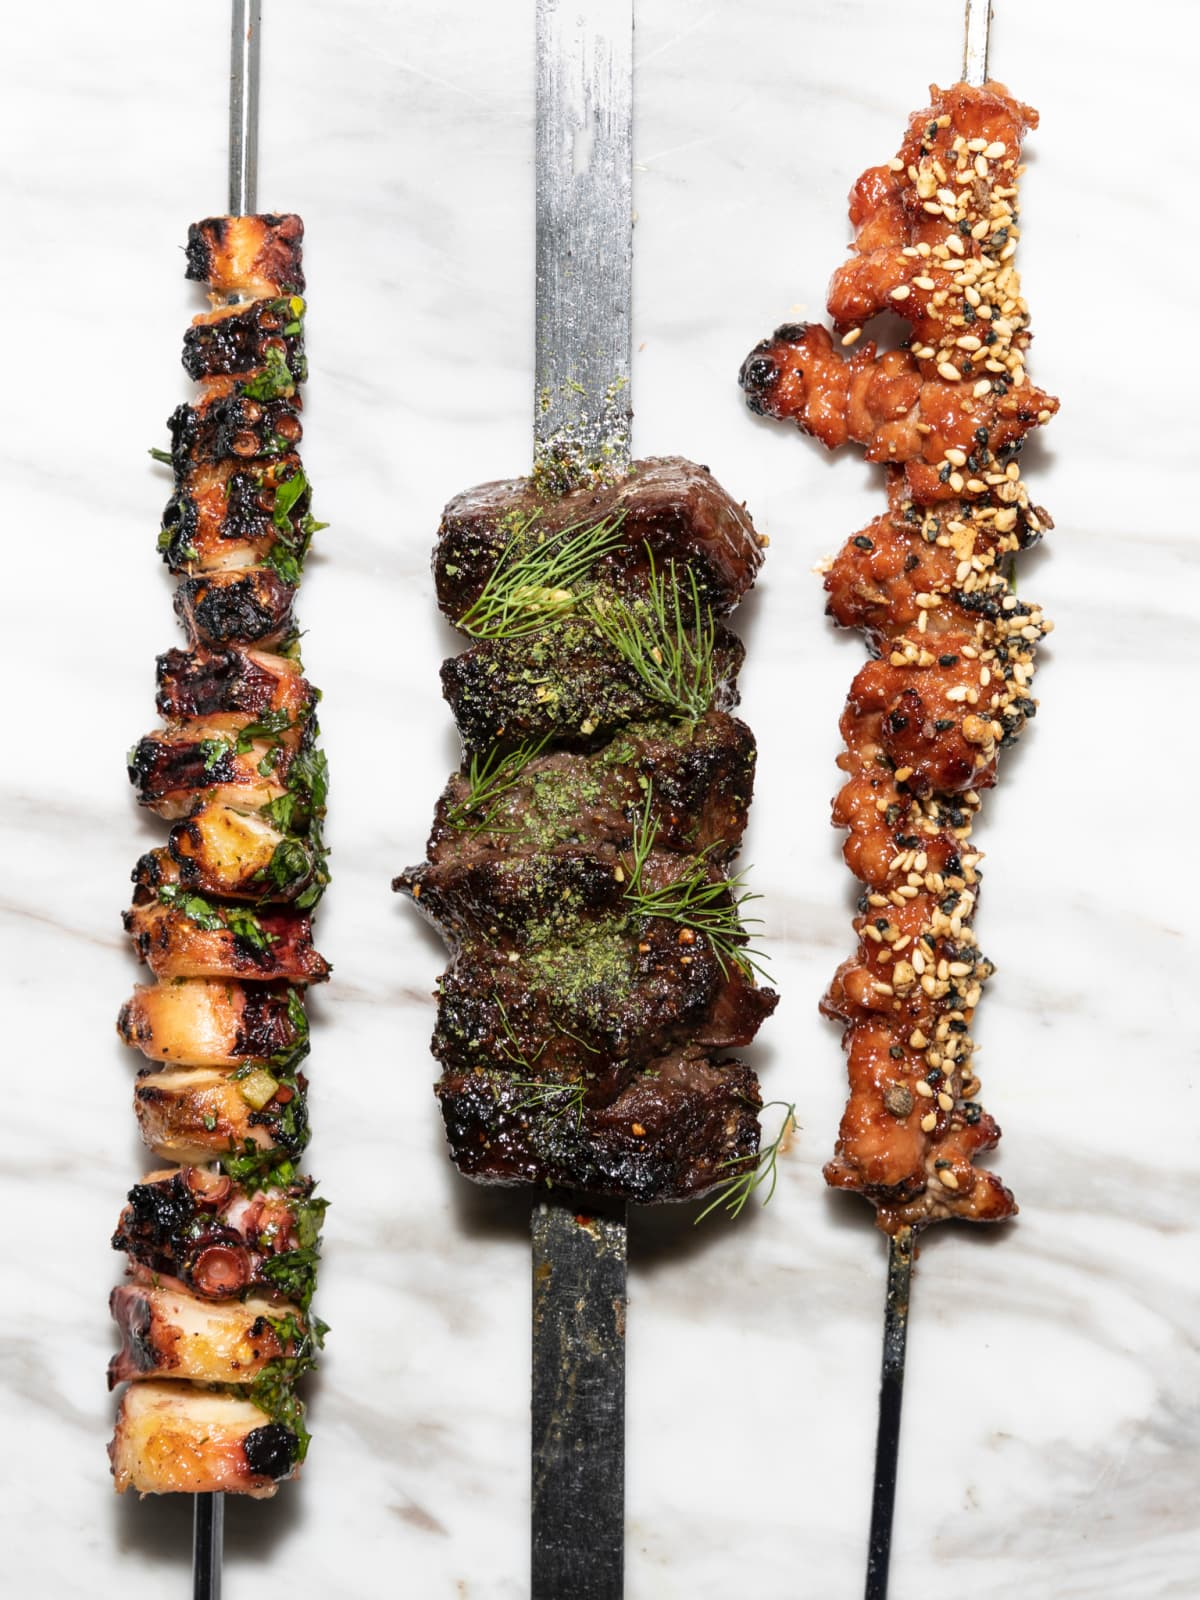 One Fifth Mediterranean Octopus; Flat iron with carob molasses; Lamb sweetbreads with date molasses and peanut dukkah